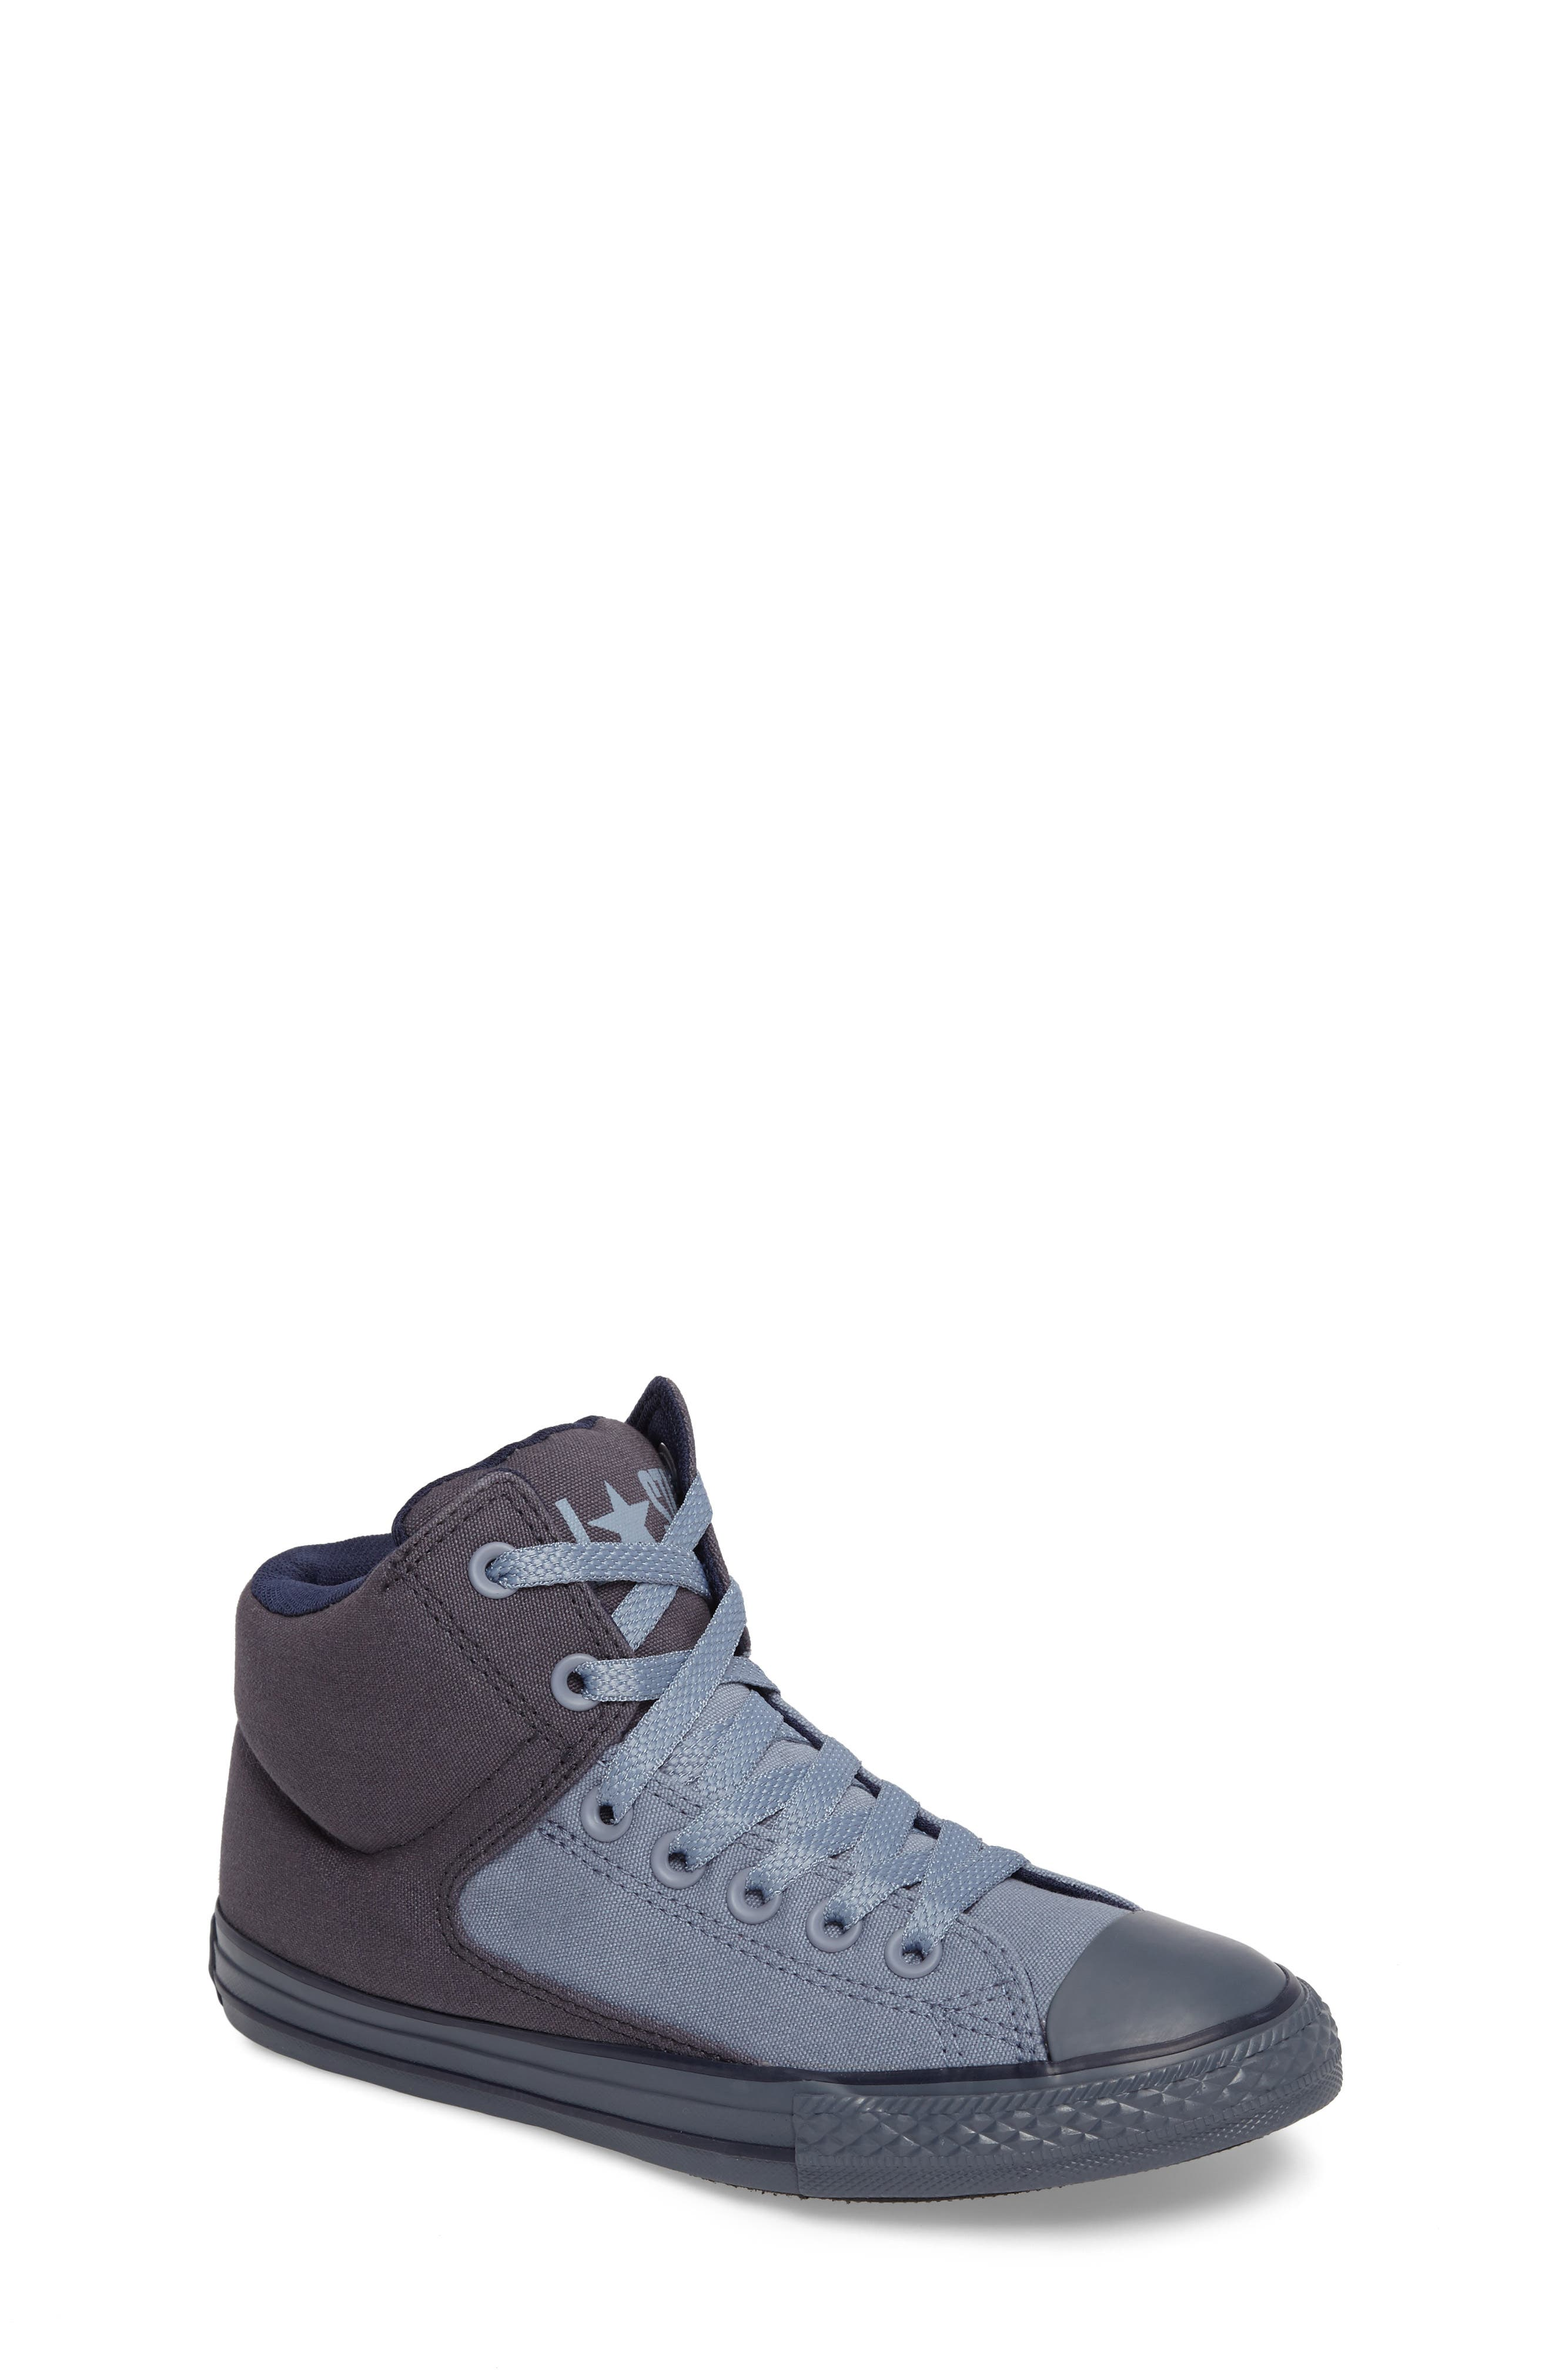 Chuck Taylor<sup>®</sup> All Star<sup>®</sup> High Street High Top Sneaker,                             Main thumbnail 1, color,                             400